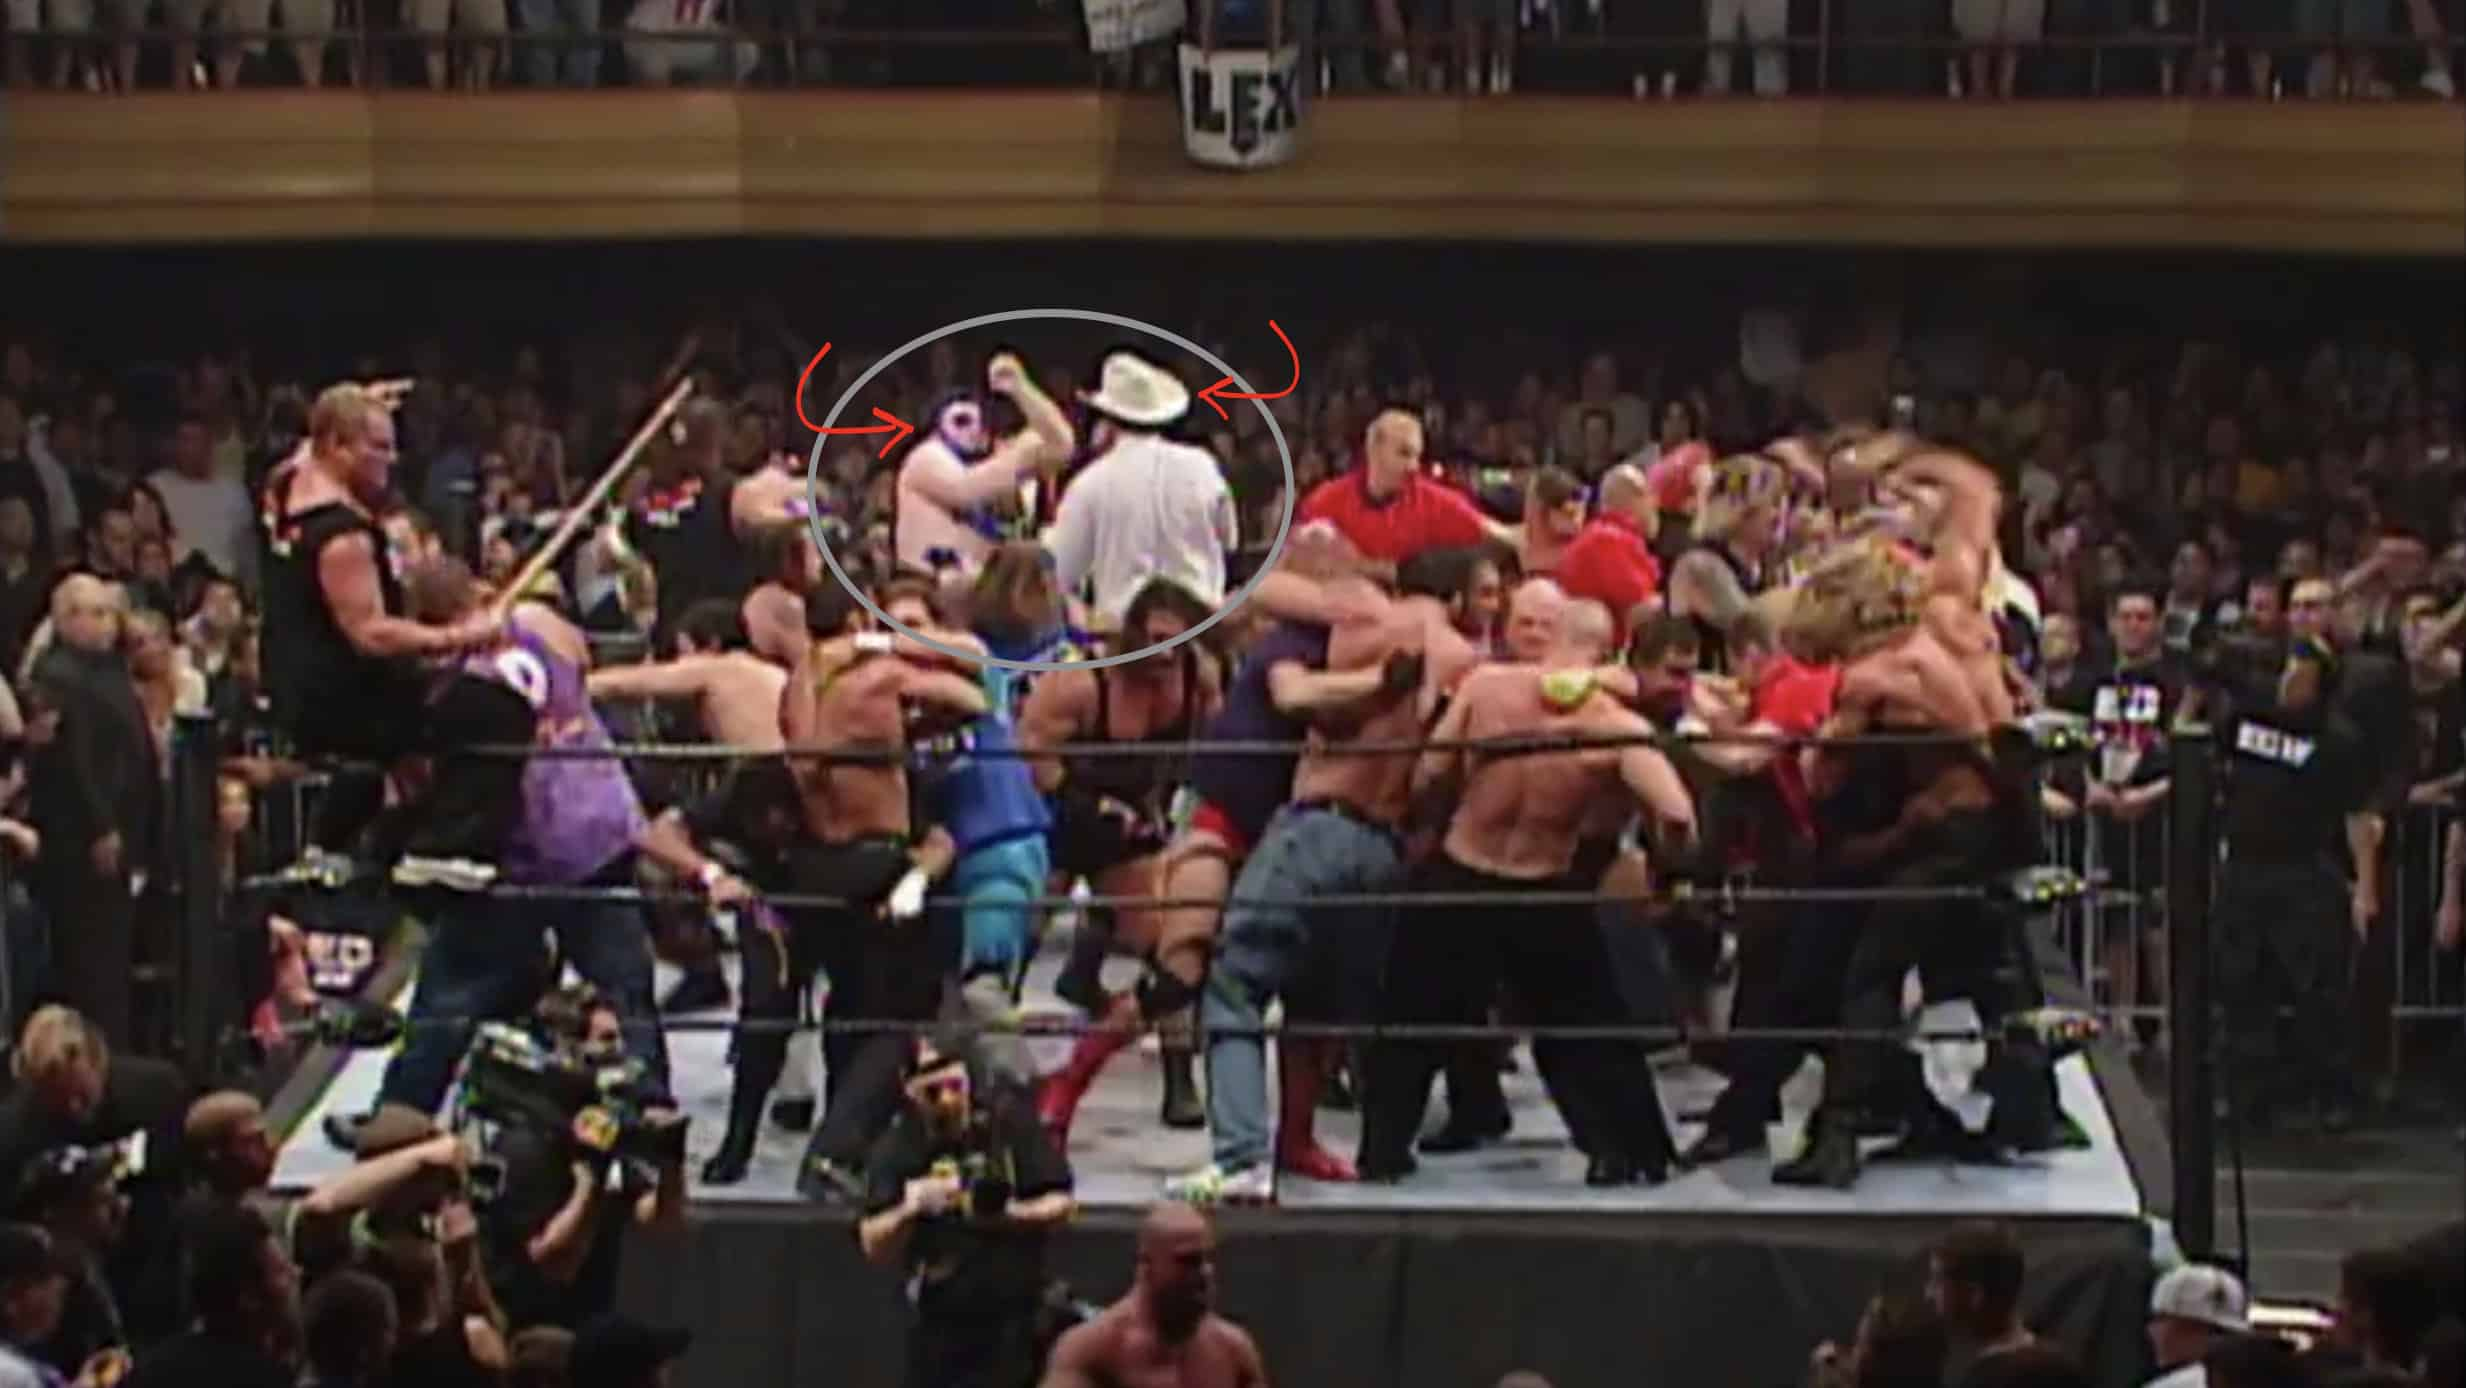 Blue Meanie get's bloodied up by JBL in the ring with a total brawl in the ring